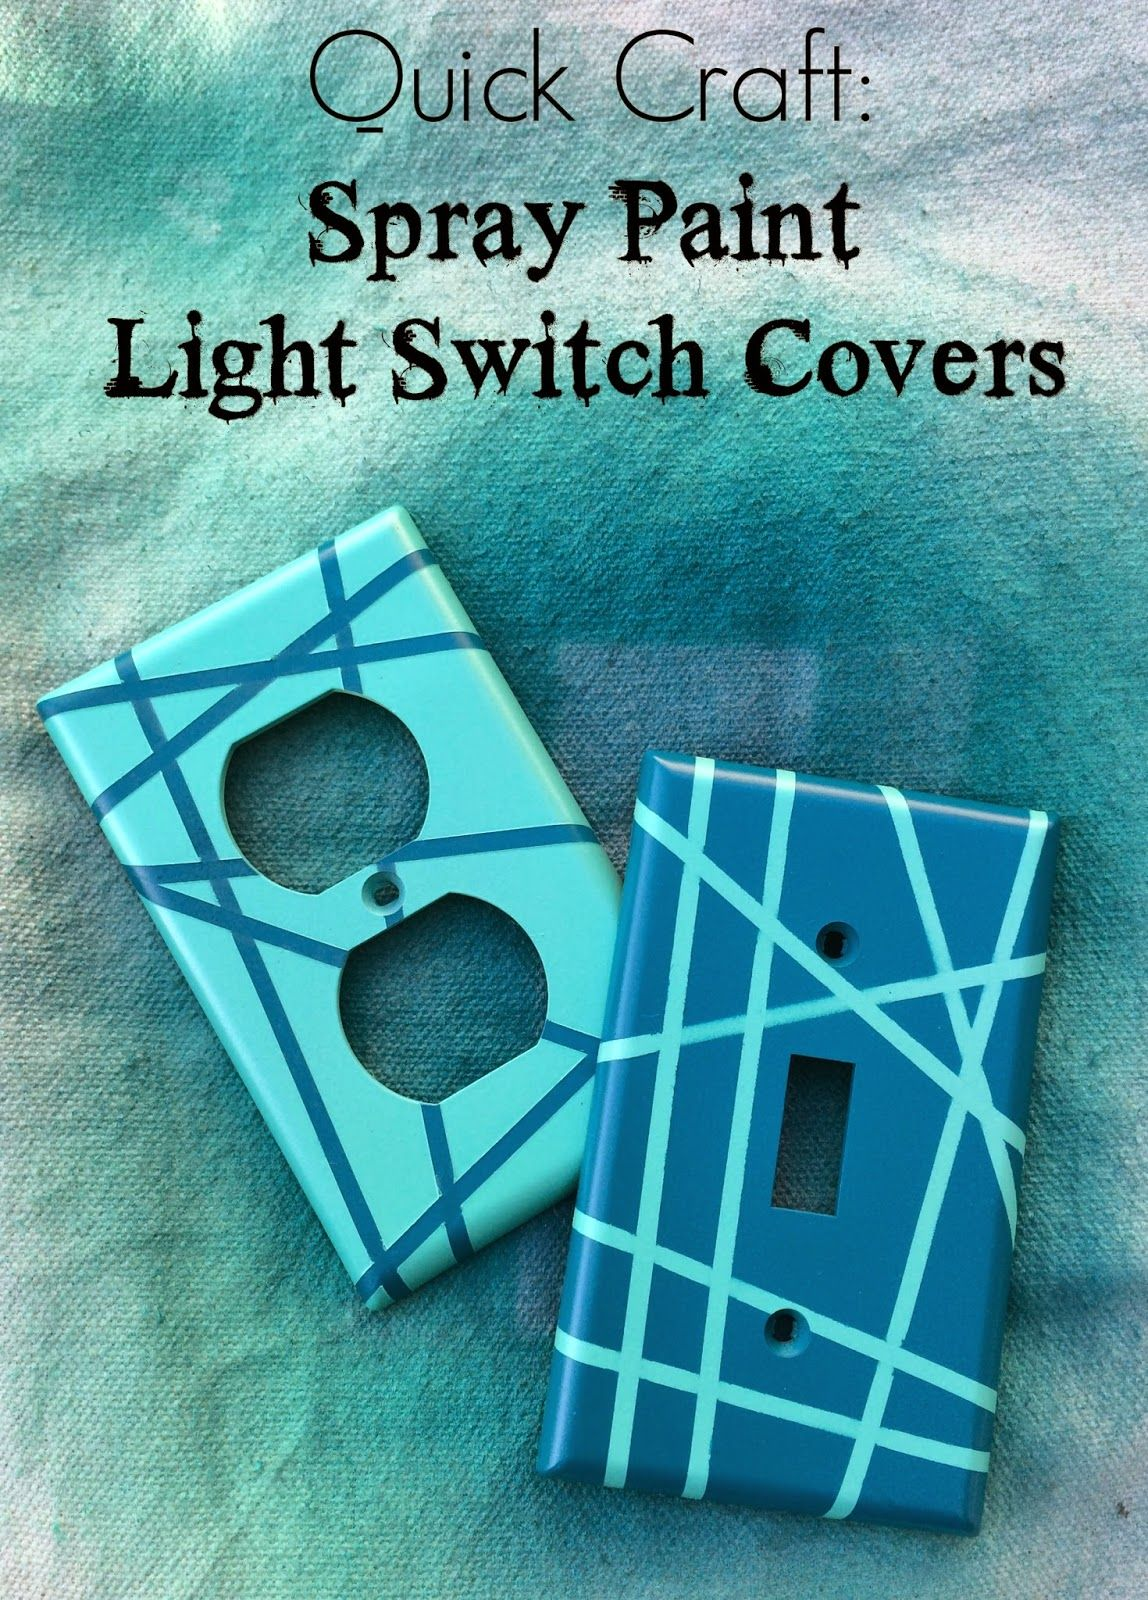 Quick Craft Spray Paint Light Switch Covers Light Switch Covers